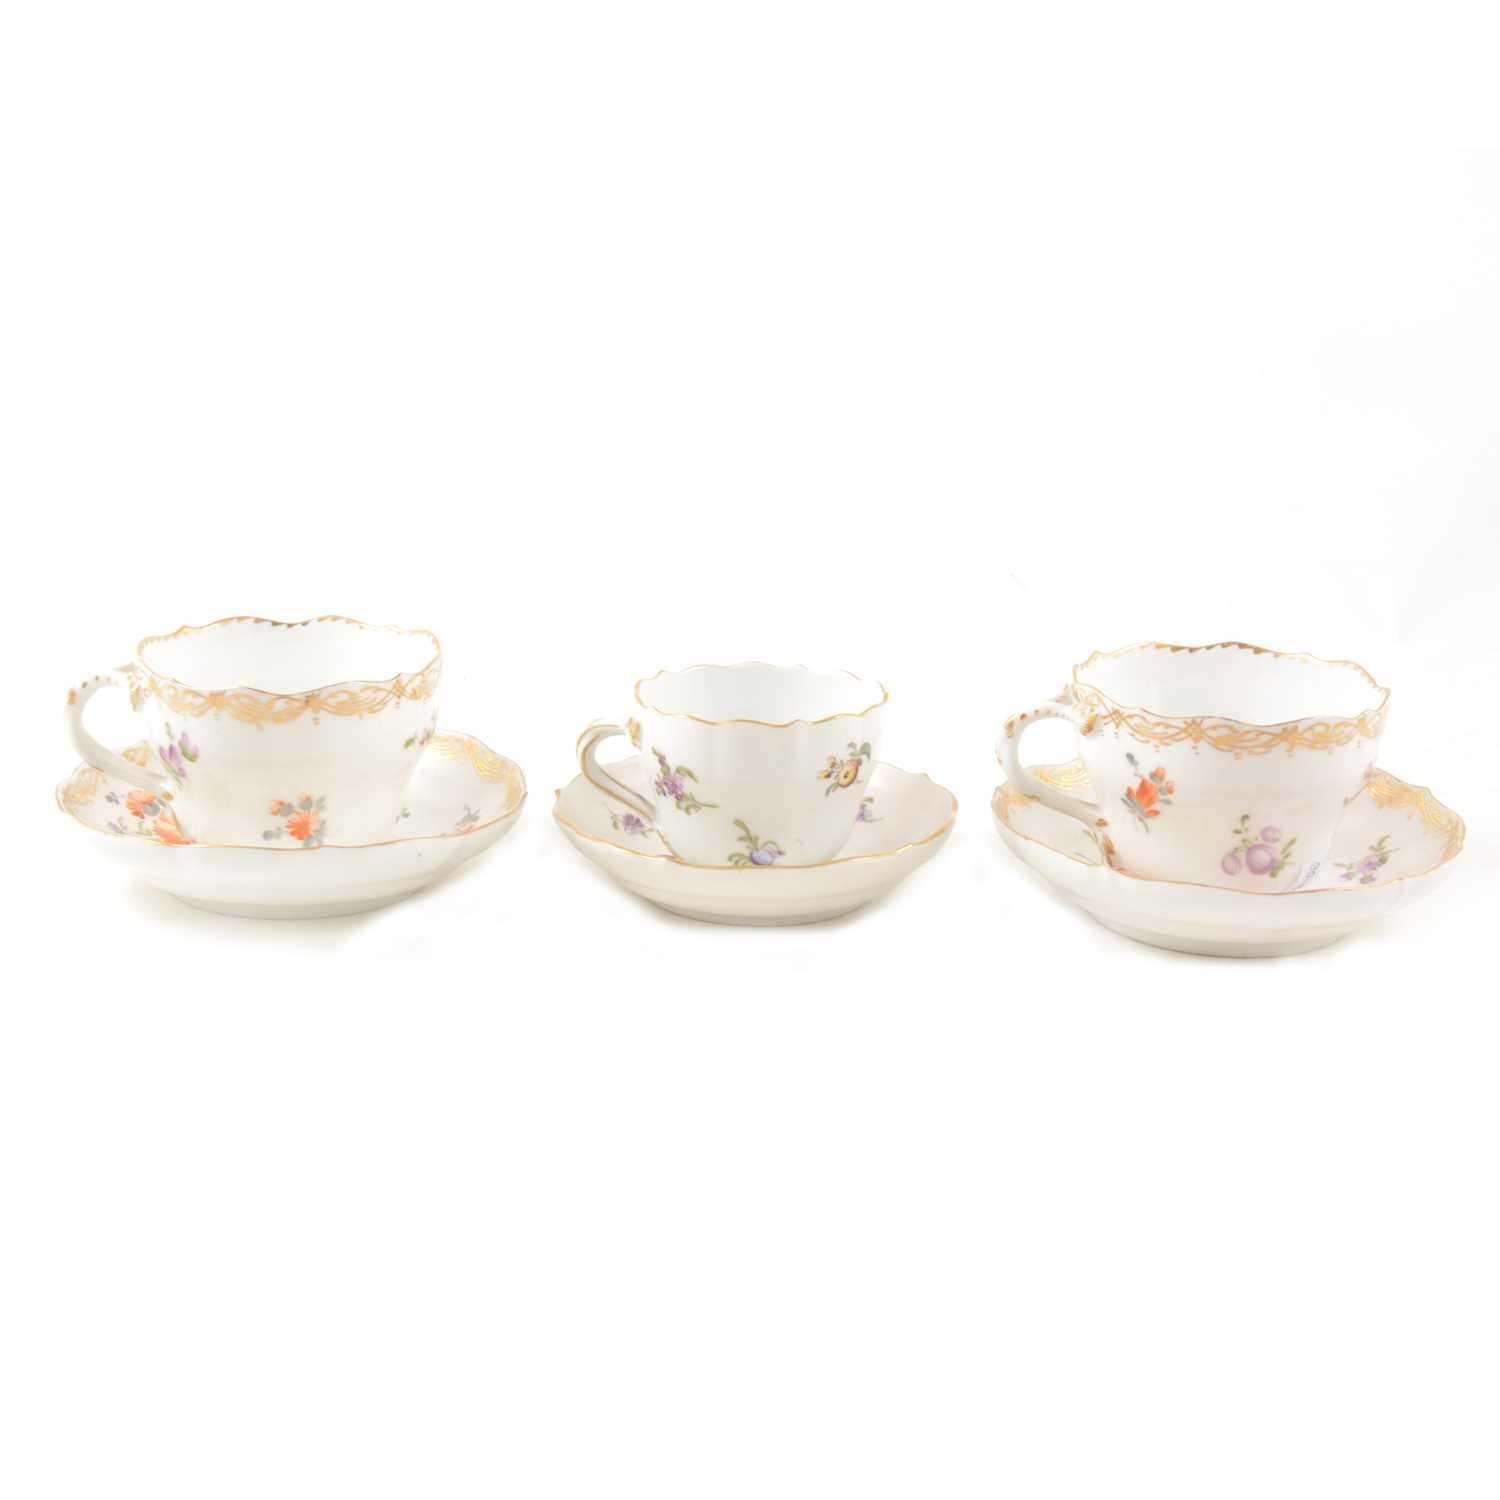 Lot 11-Meissen cabinet cup and saucer, second quality